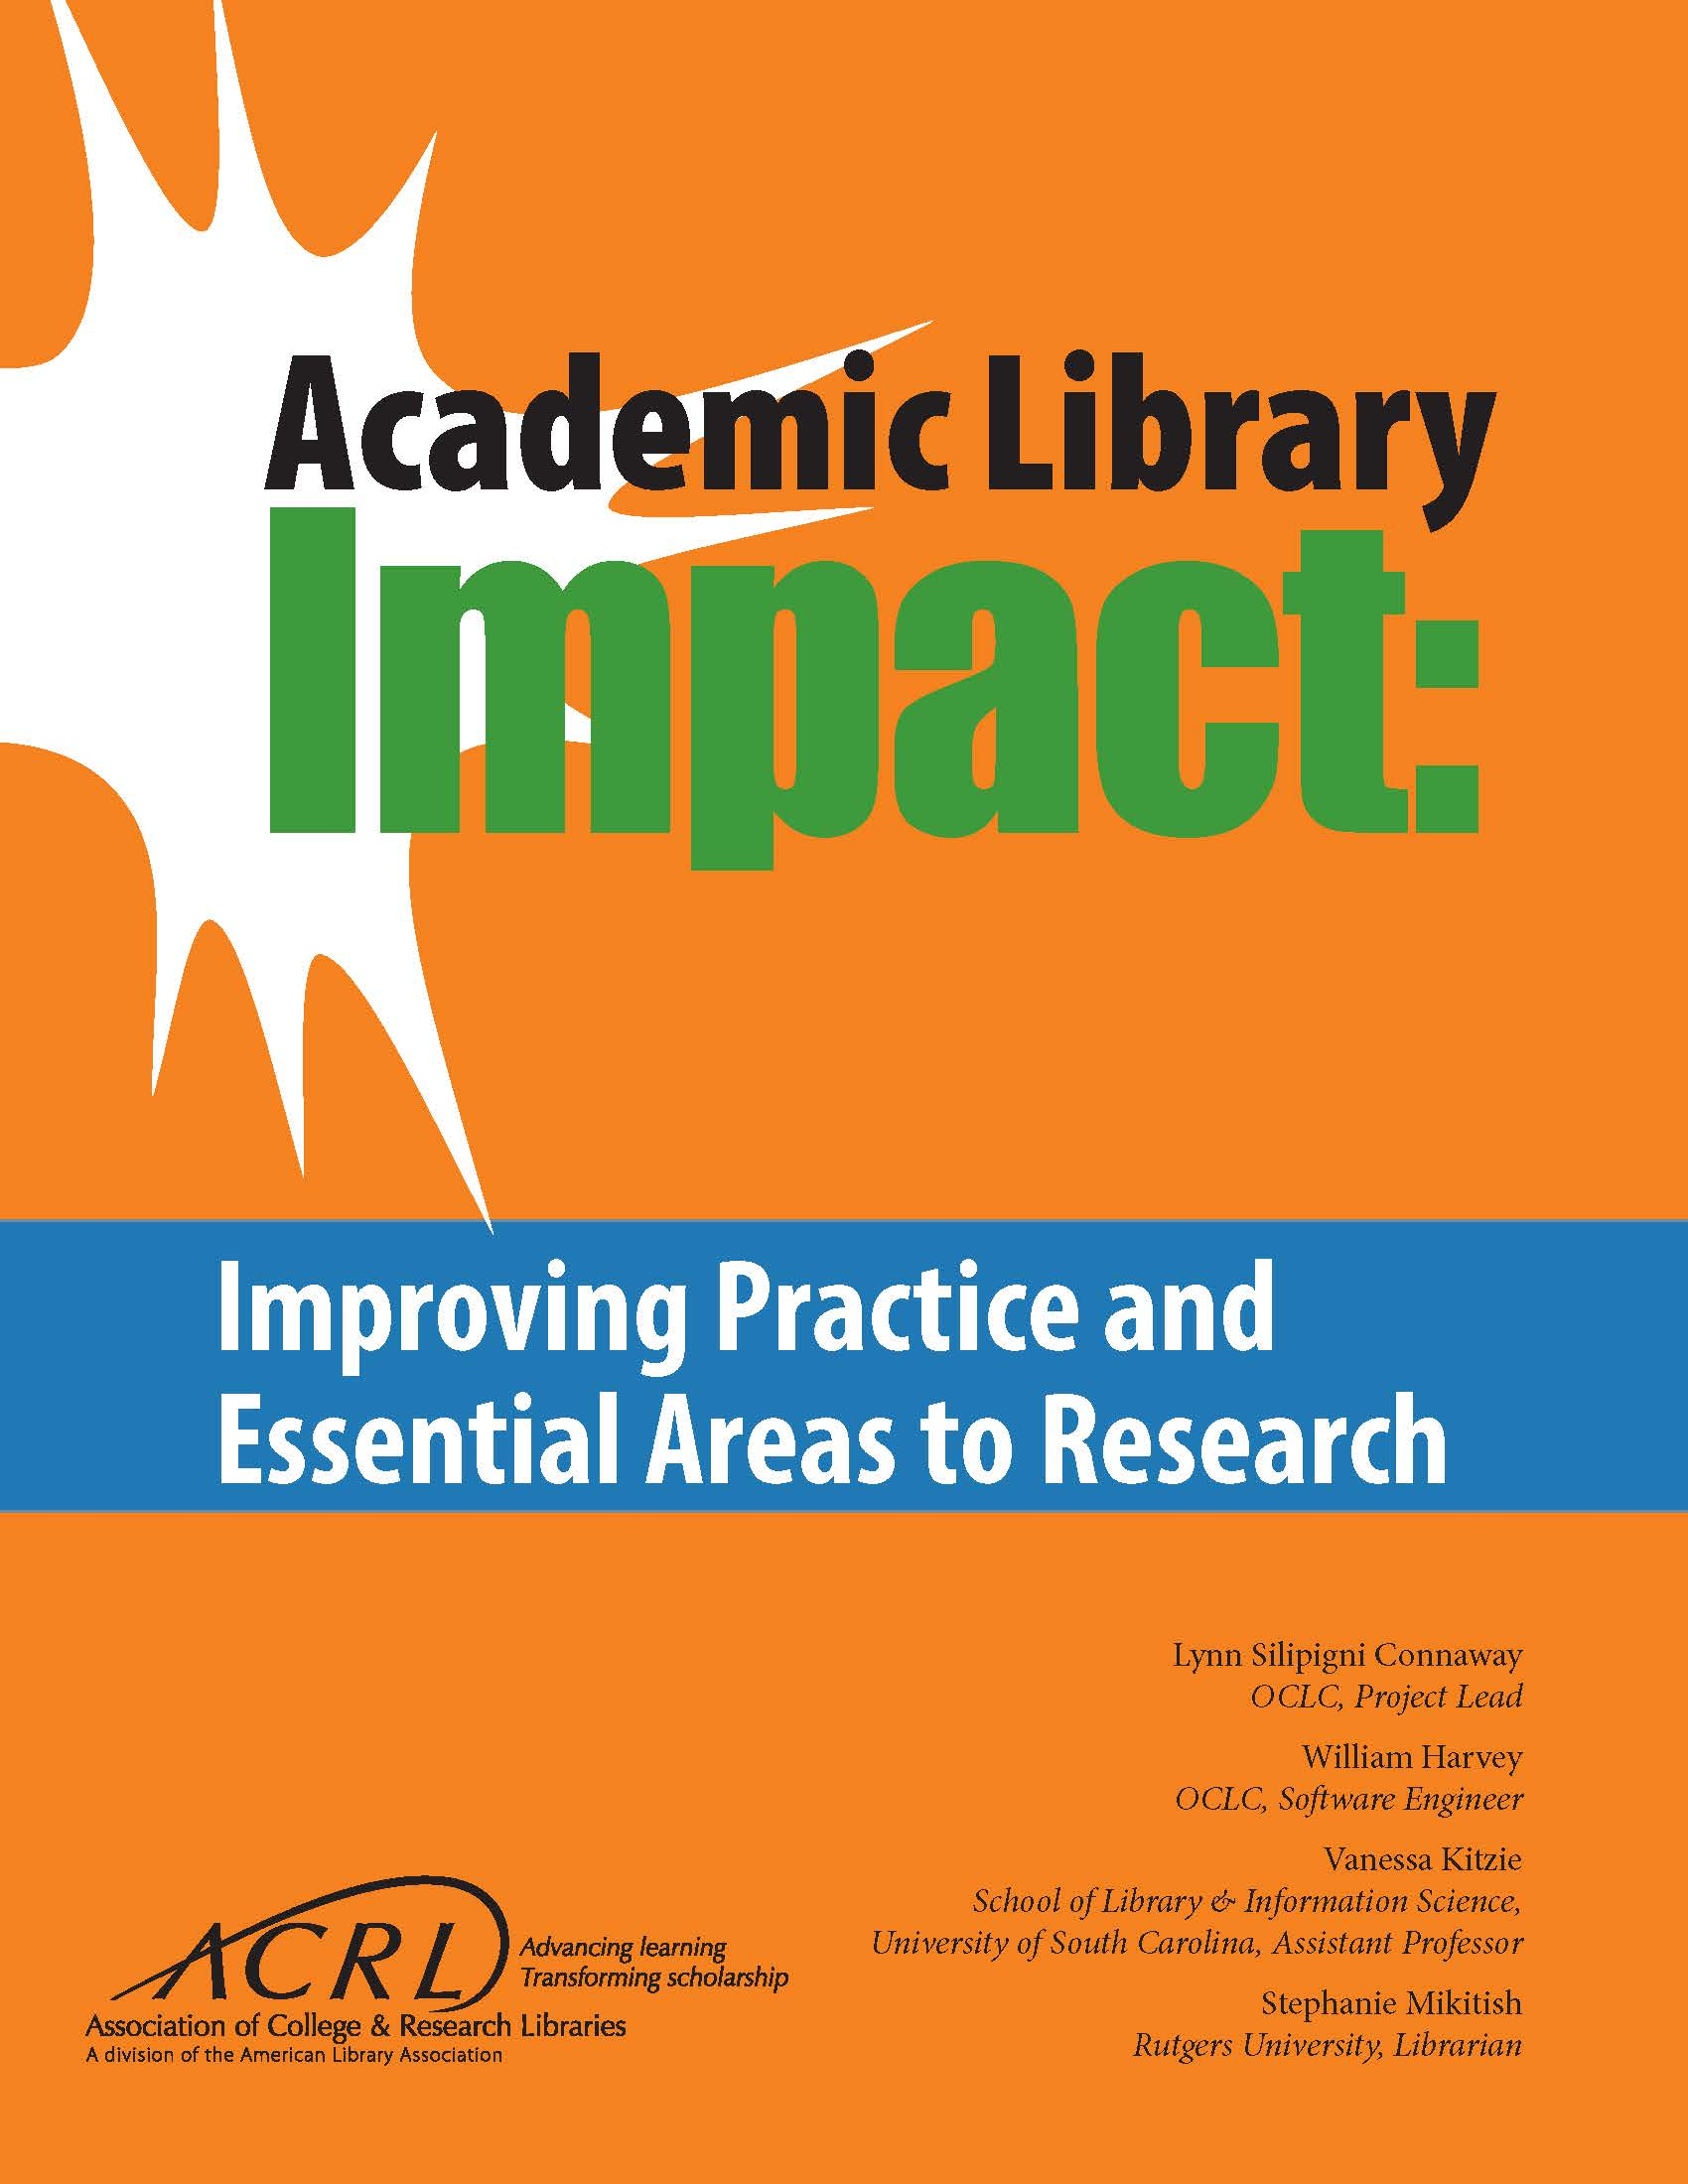 library research Research guides these research tools how-to guides explore helpful guides on library essentials, such as how to cite sources, find government documents, or.